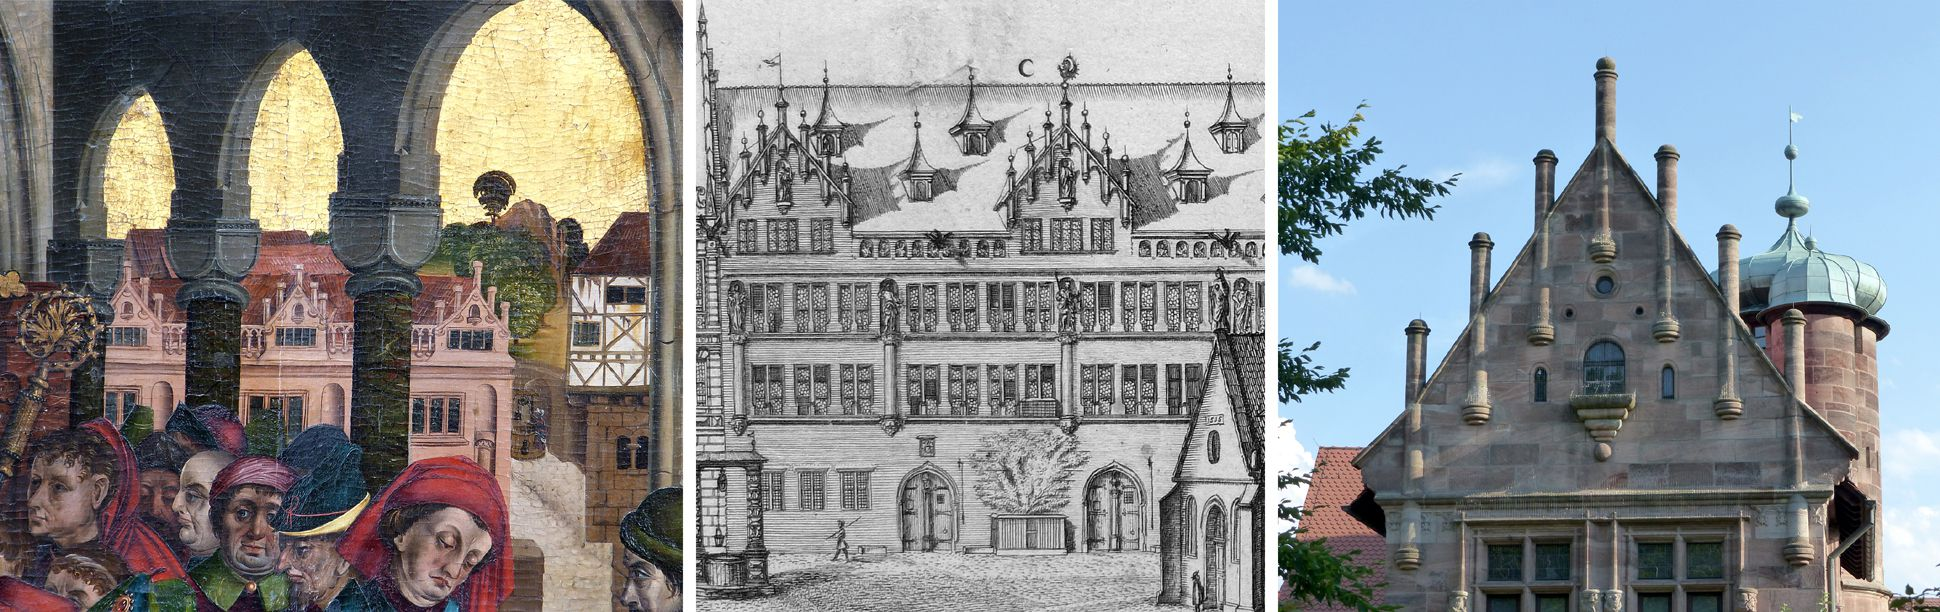 Epitaph of Hans Mayer (gest. 21.8.1473) and his spouese Kunigunde, neé Sternecker (died. 23. March 1450) left: view to the Groland premises (Egidienberg); centre: Graff´s representation of the same motif (1682), right: gable of the little Tucher palace (1533 - 1544)